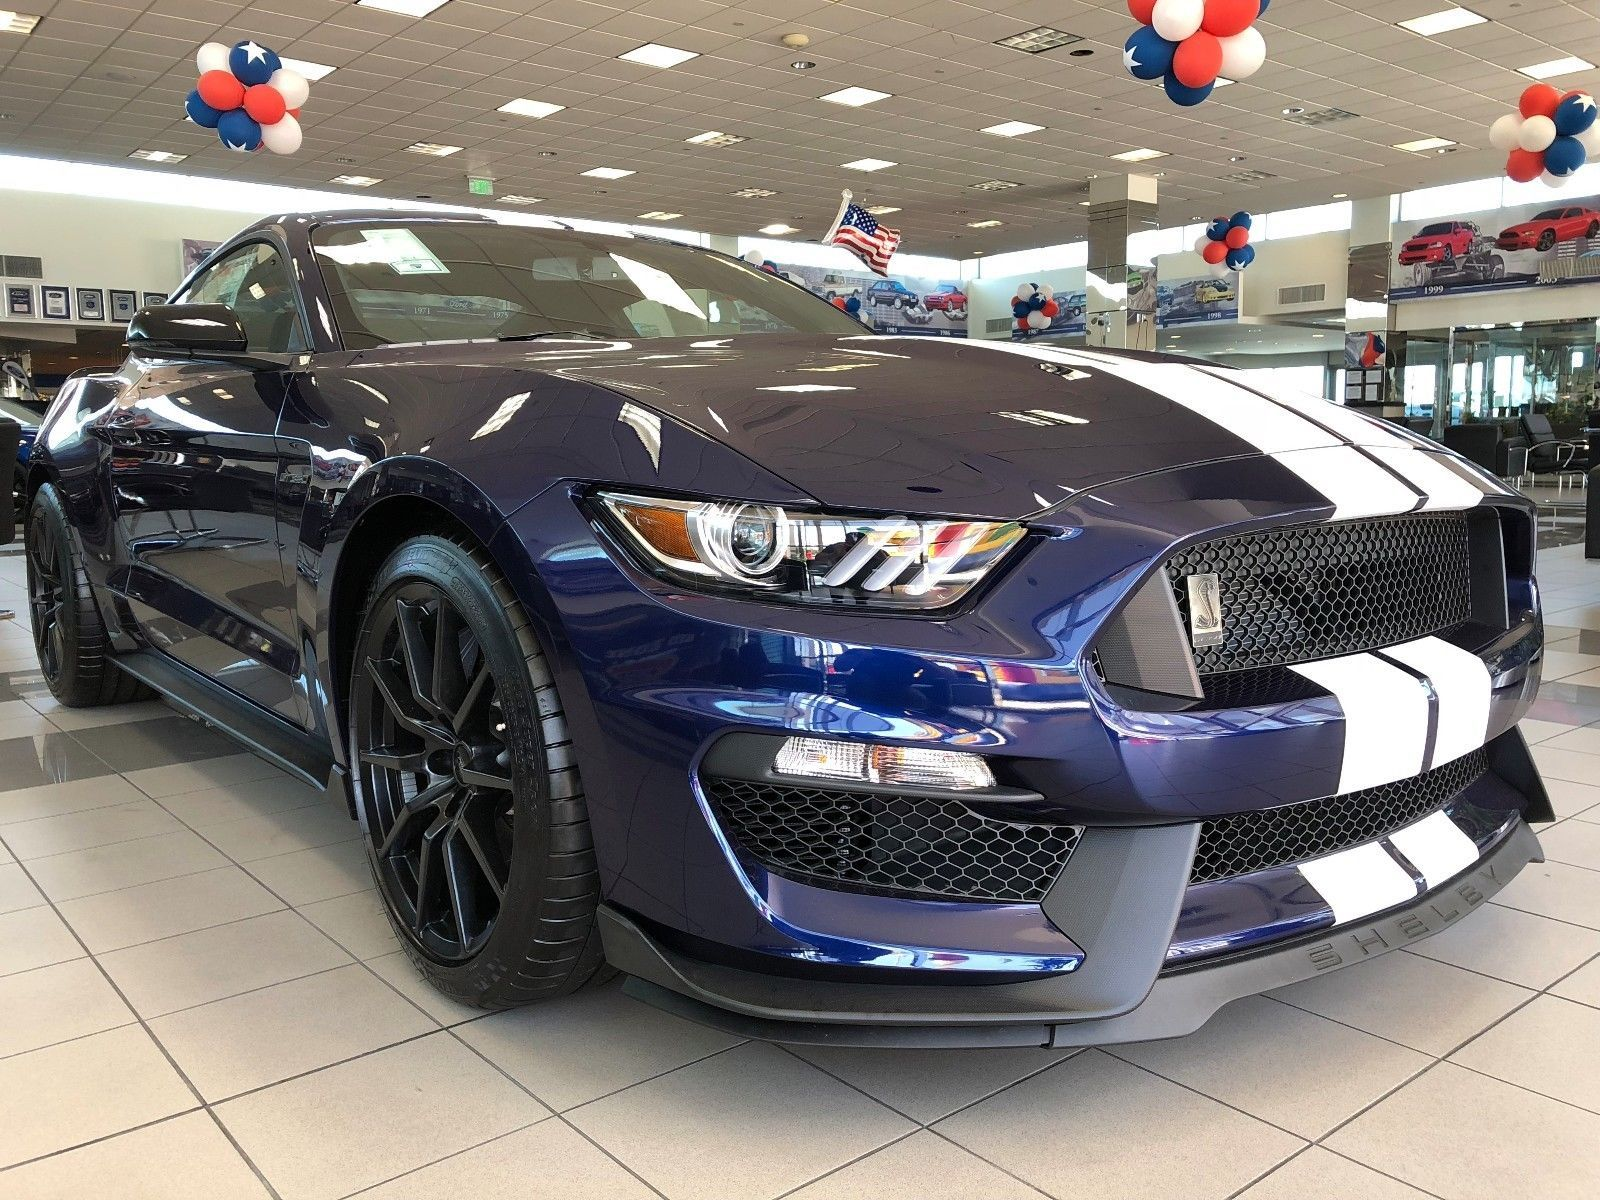 Ebay 2018 Ford Mustang Shelby Gt350 2018 Ford Mustang Shelby